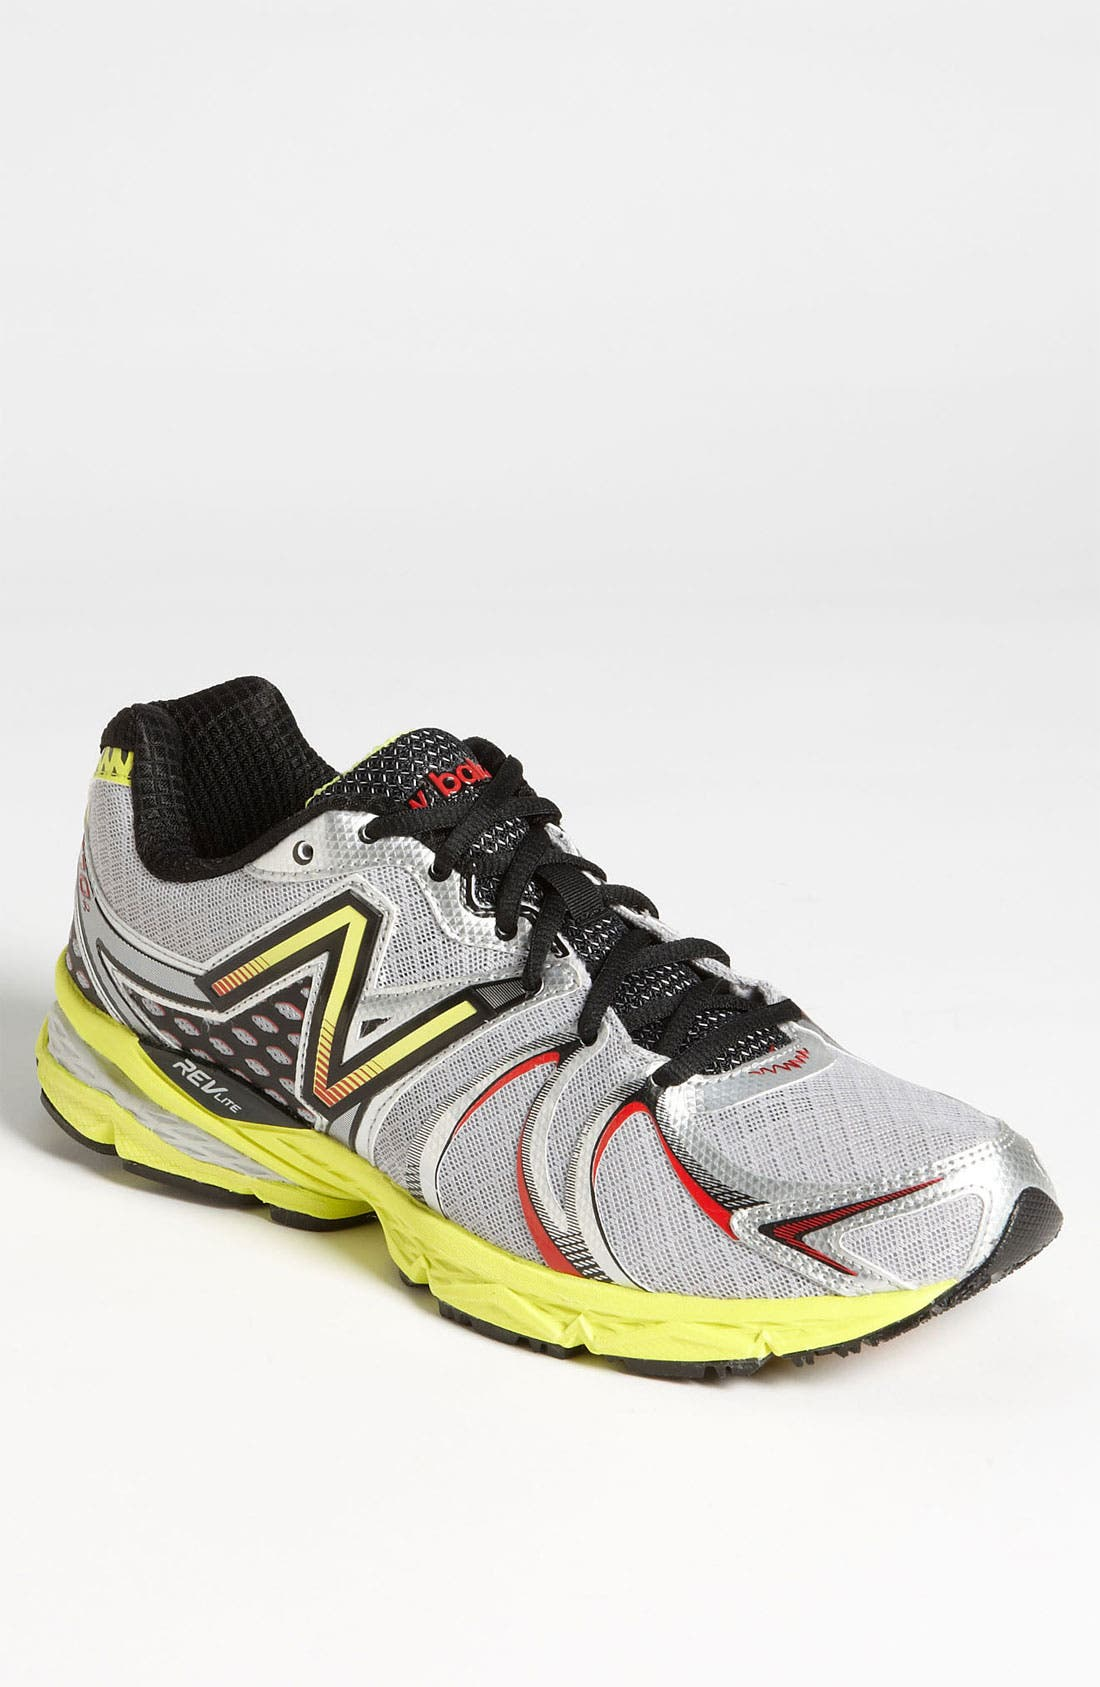 Alternate Image 1 Selected - New Balance '870' Running Shoe (Men)